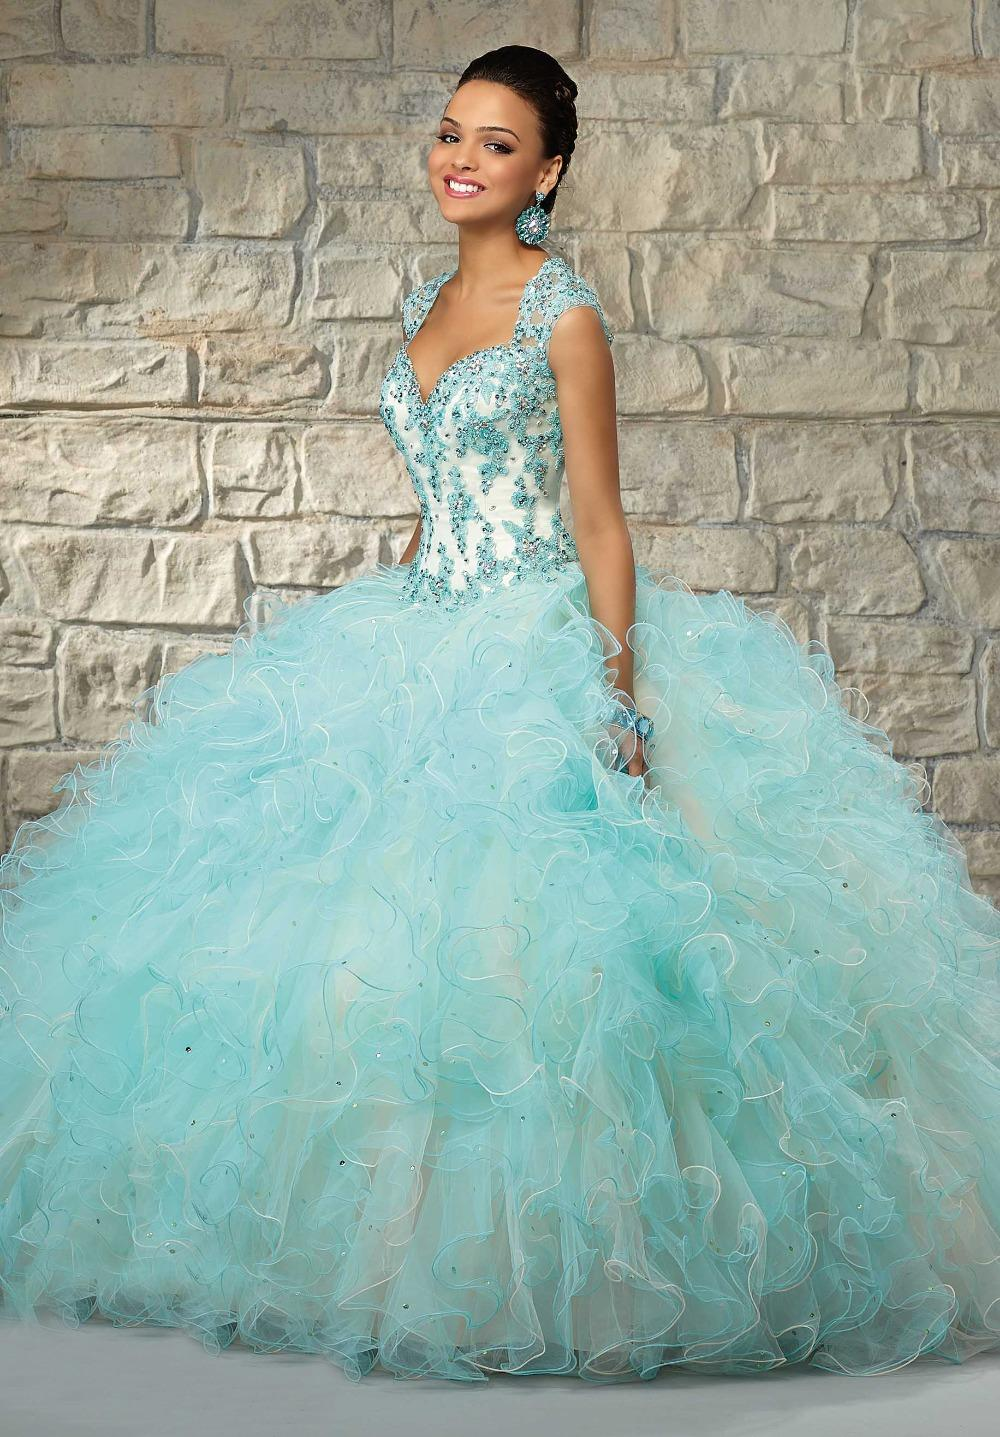 2017 beaded lace bodice organza ball gown blue and white wedding dresses china mainland